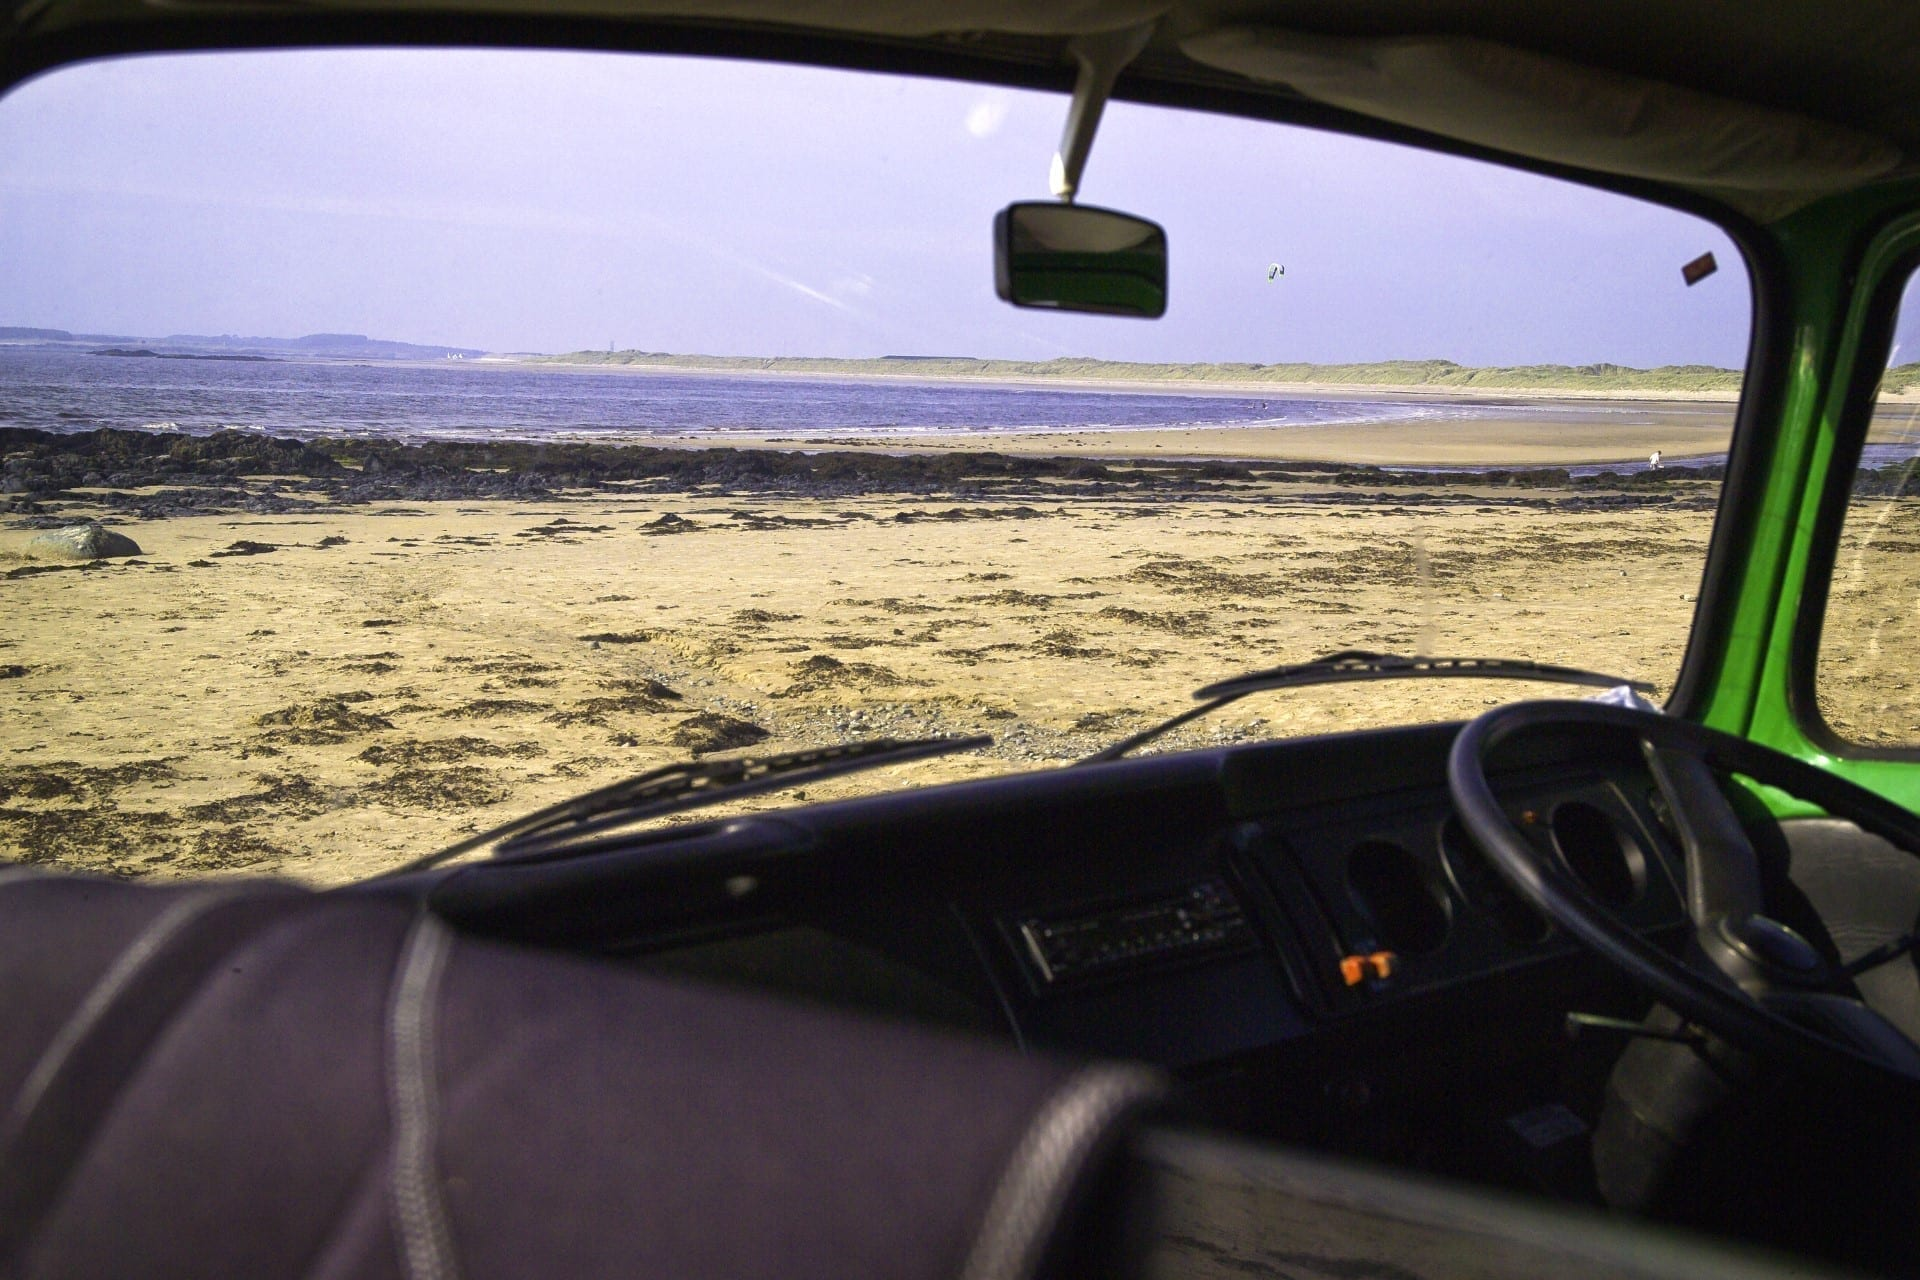 Beach view from a campervan